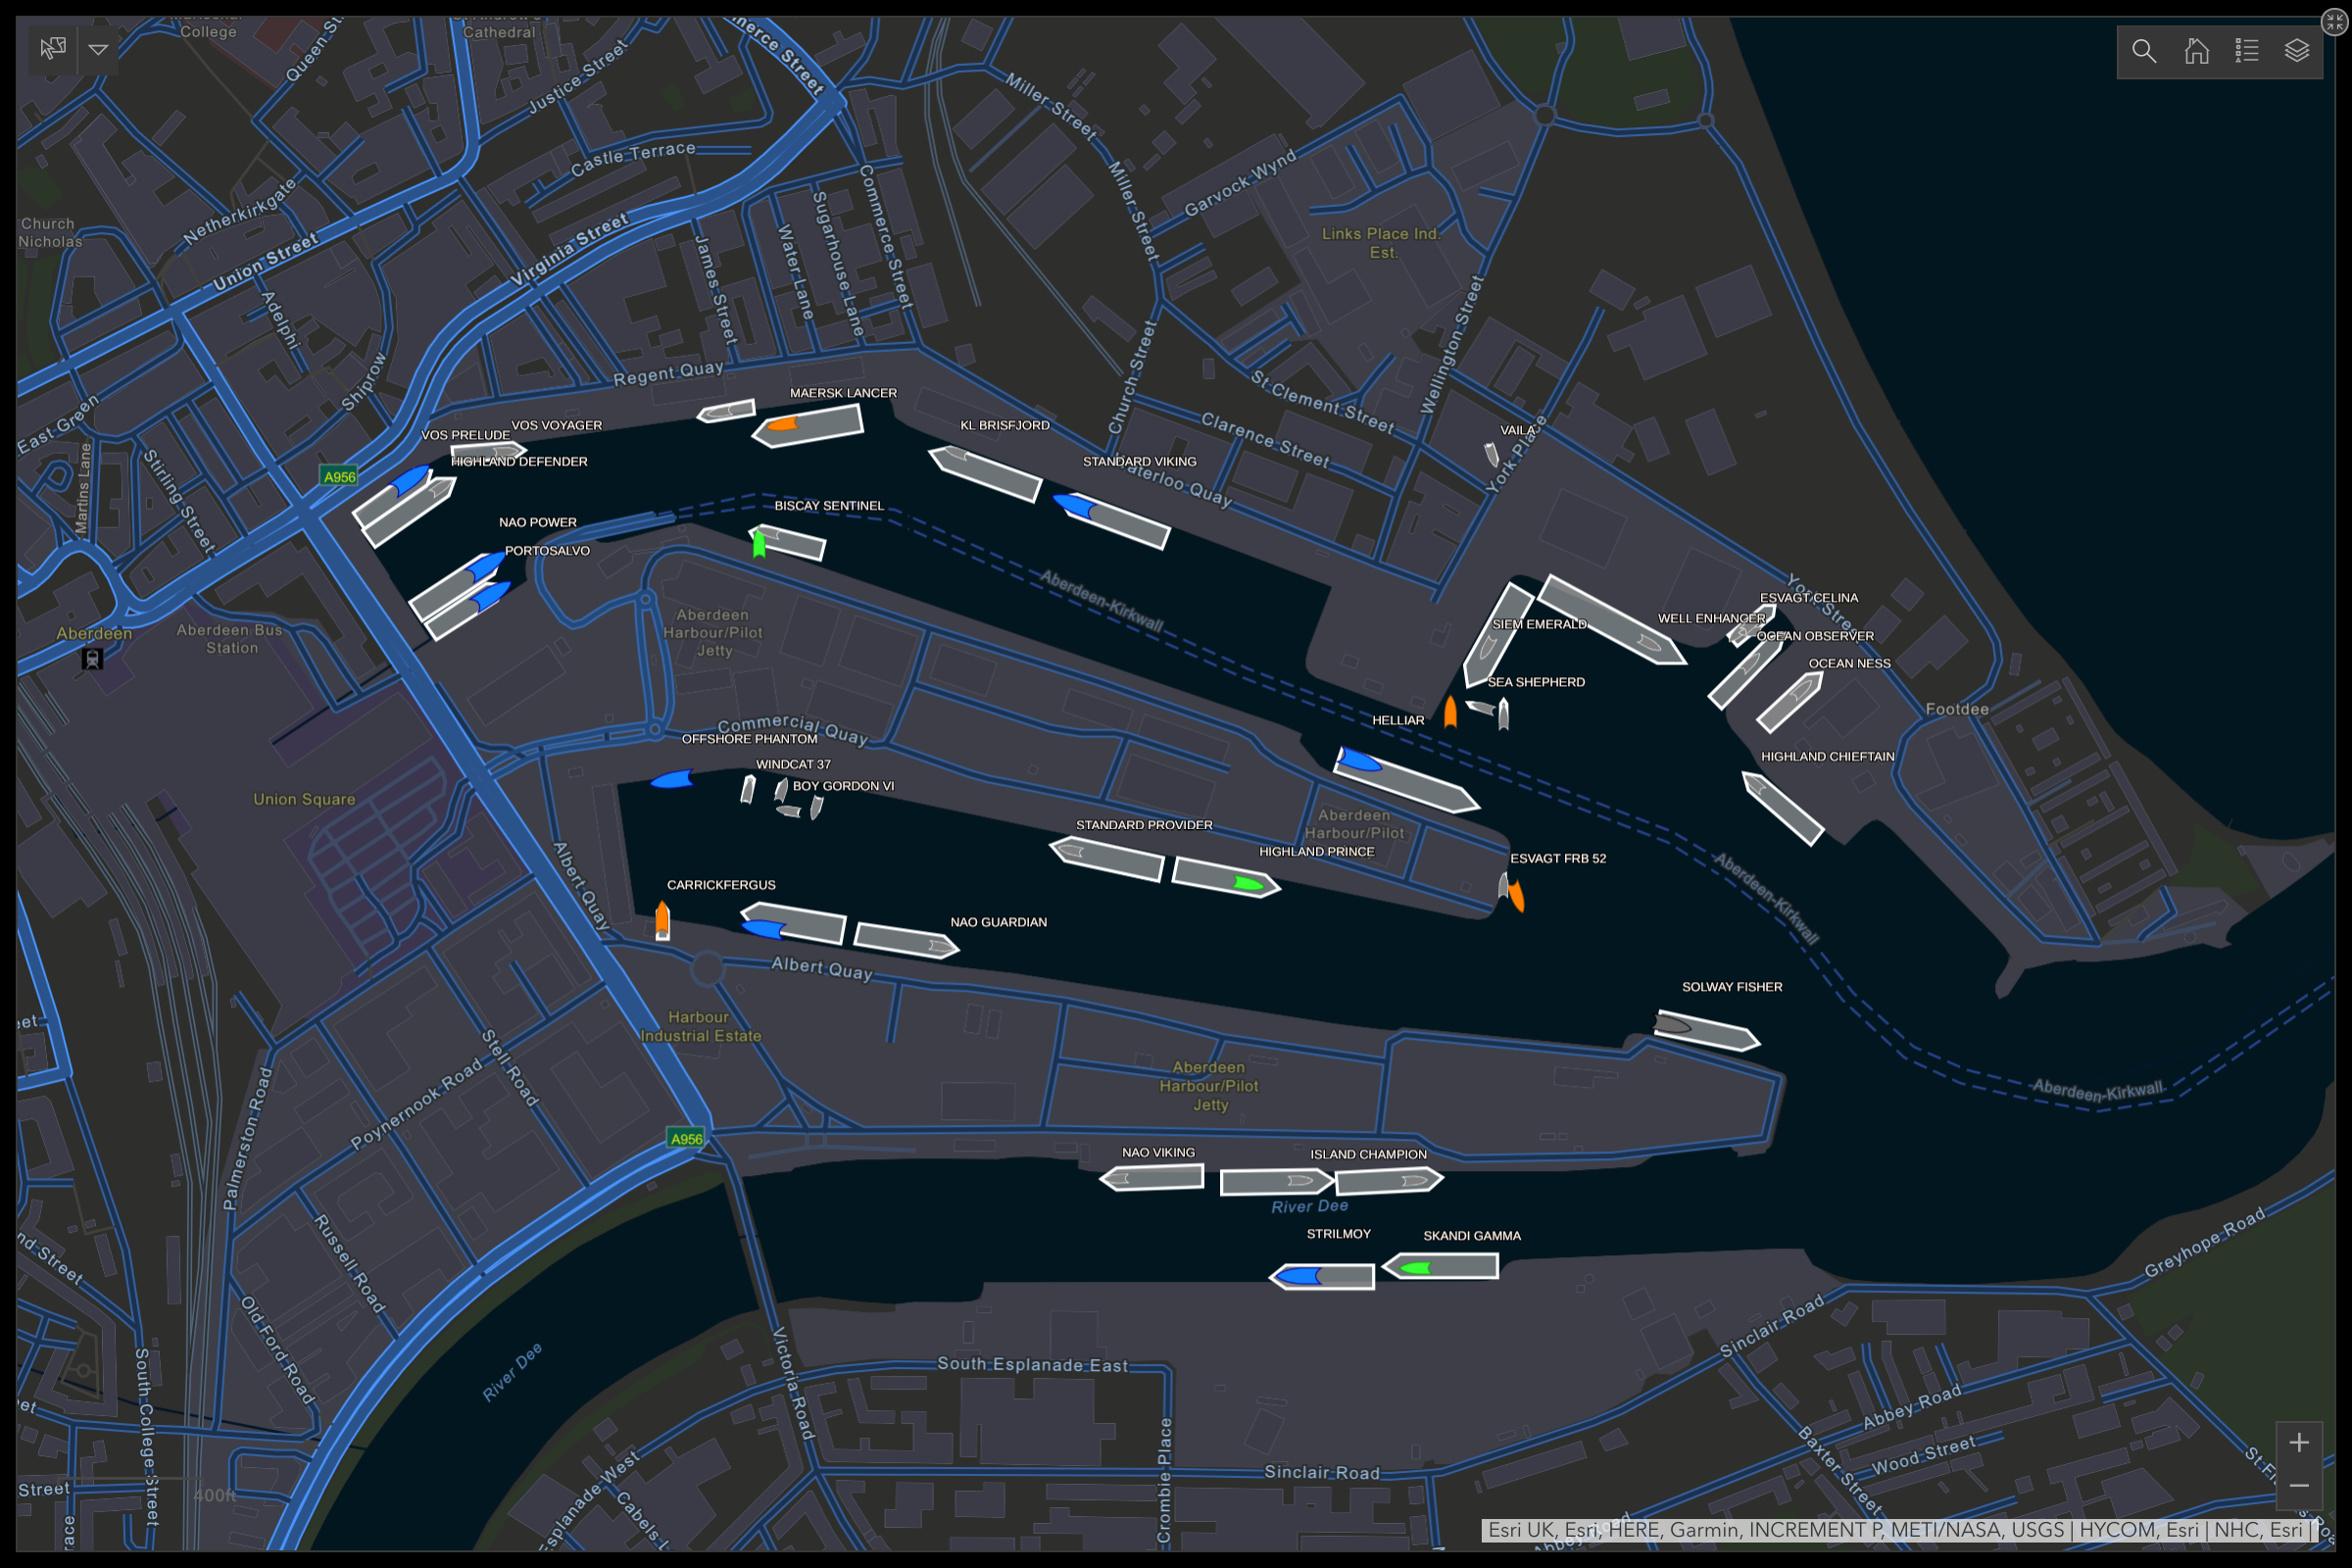 Raptor Geo-IoT services inside of esri's Operations Dashboard in ArcGIS Online. This shows geofence and realtime vessel capabilties at the Port of Aberdeen. The AIS vessel information is provided by Spire (spire.com)